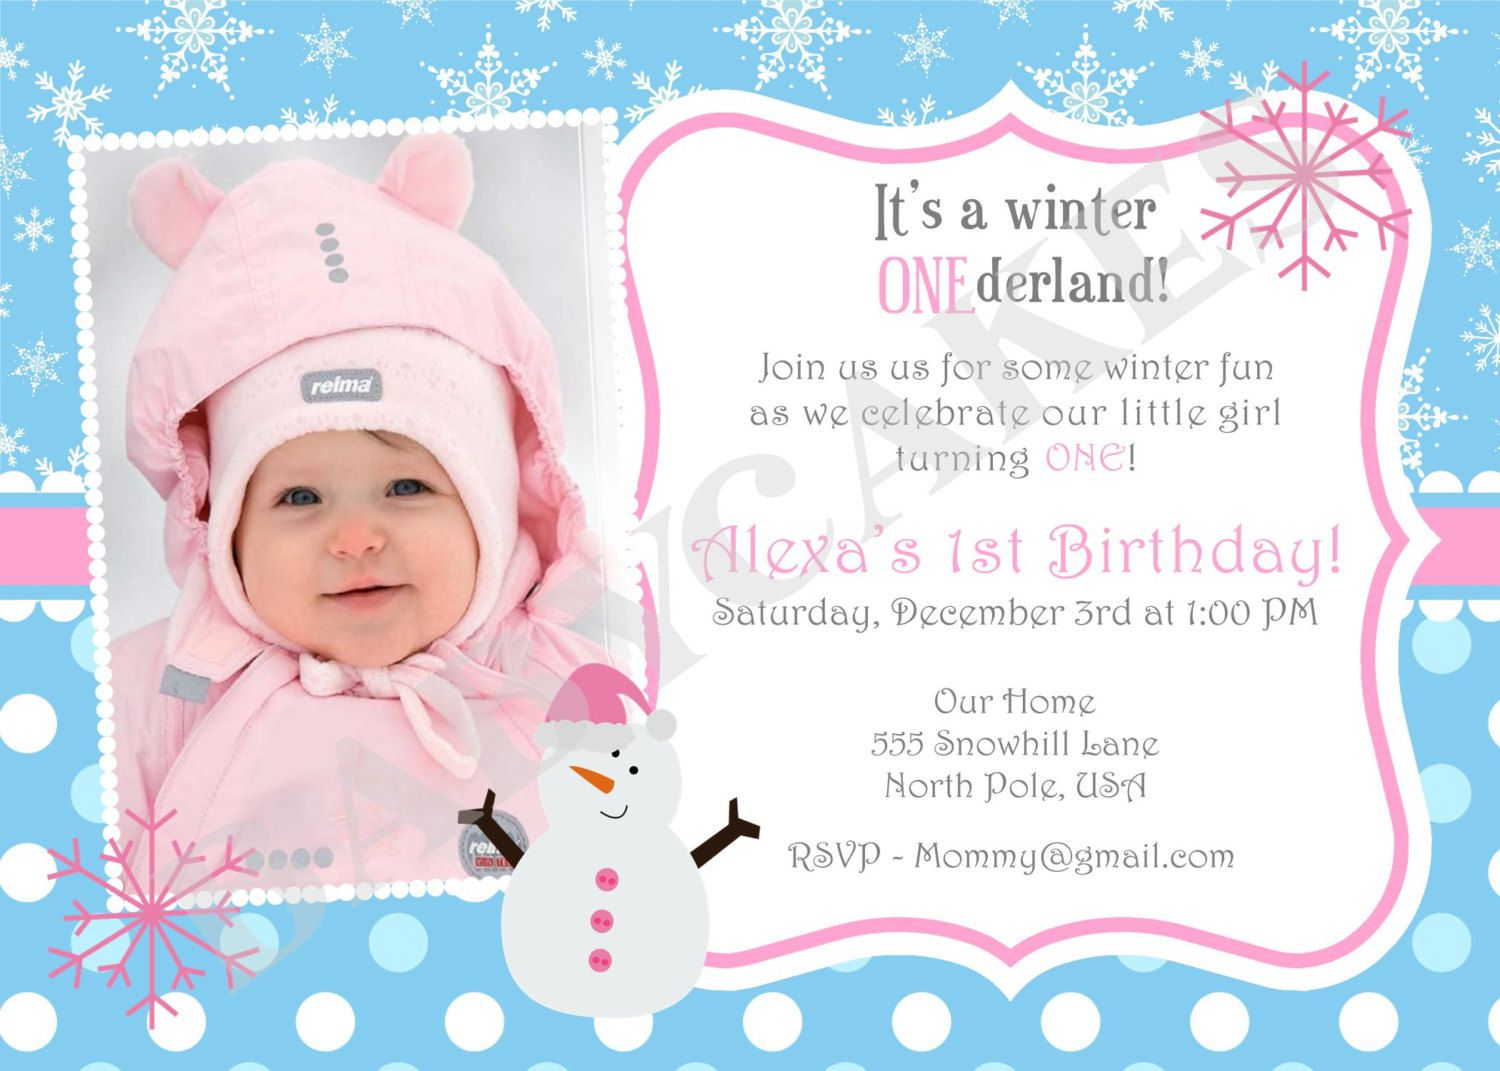 baby birthday invitation template ; 32433a5a39d30ae29126ce8547c22125